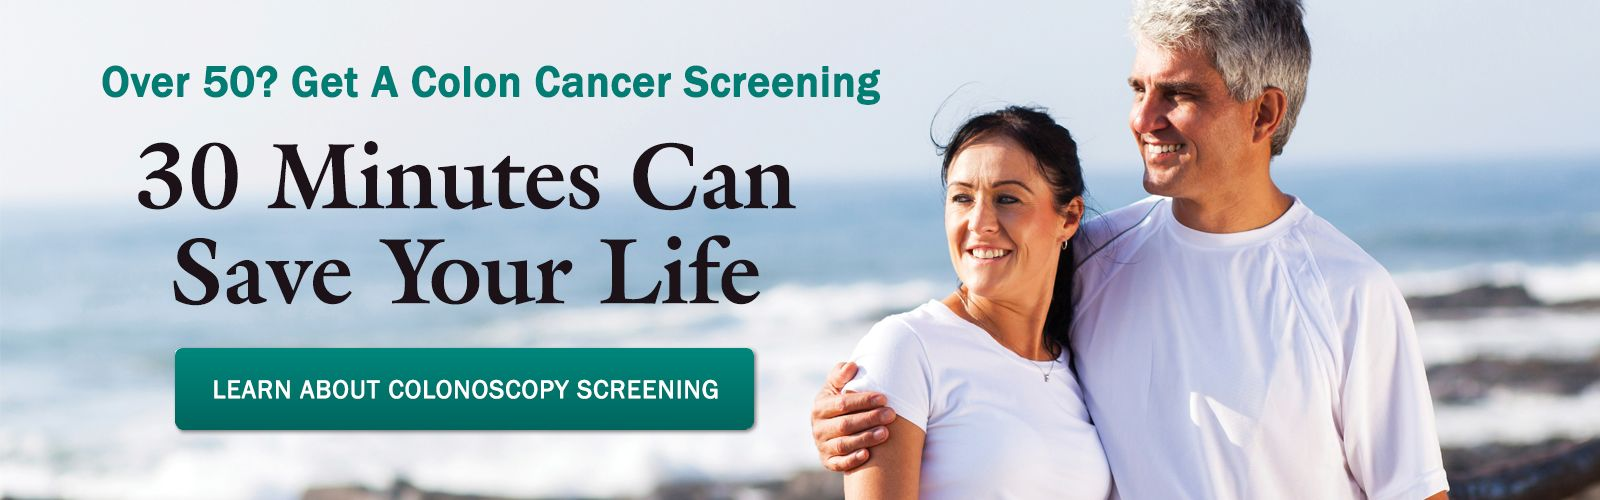 Colon Cancer Screening Saves Lives